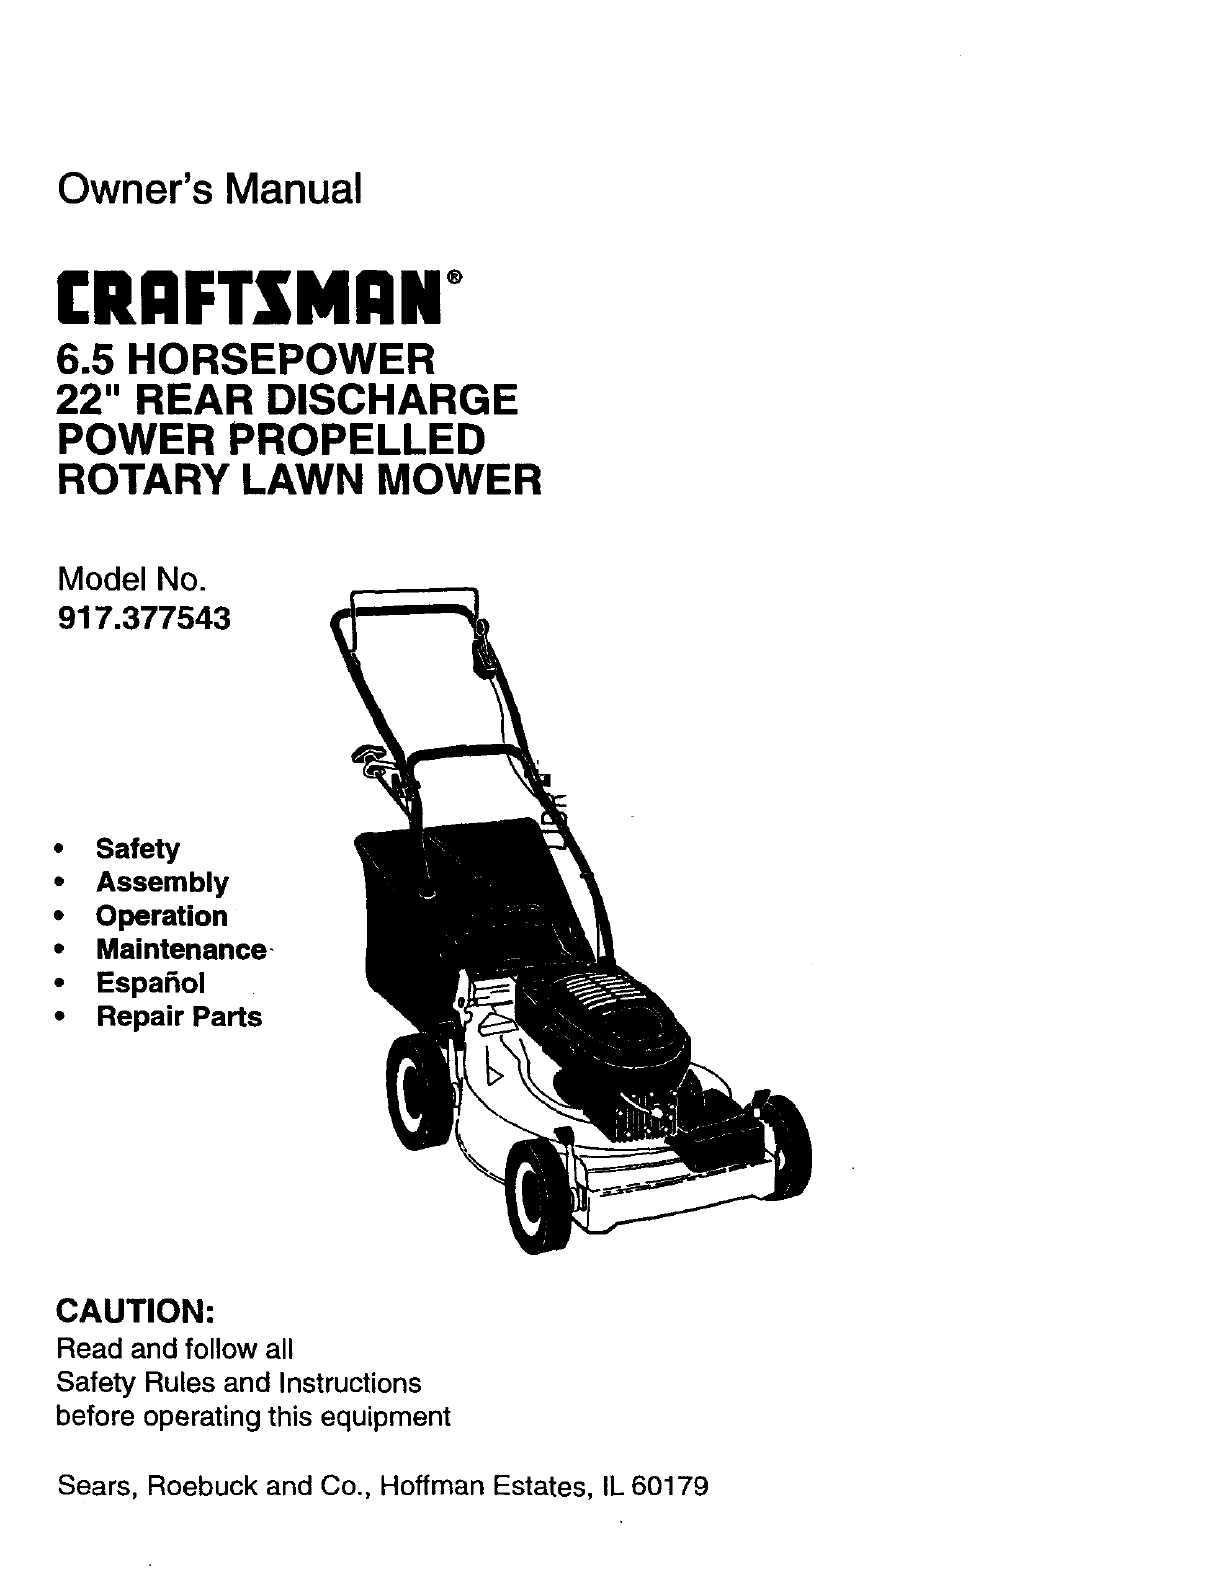 Craftsman 6.5 Hp Lawn Mower Manual : Craftsman Mower